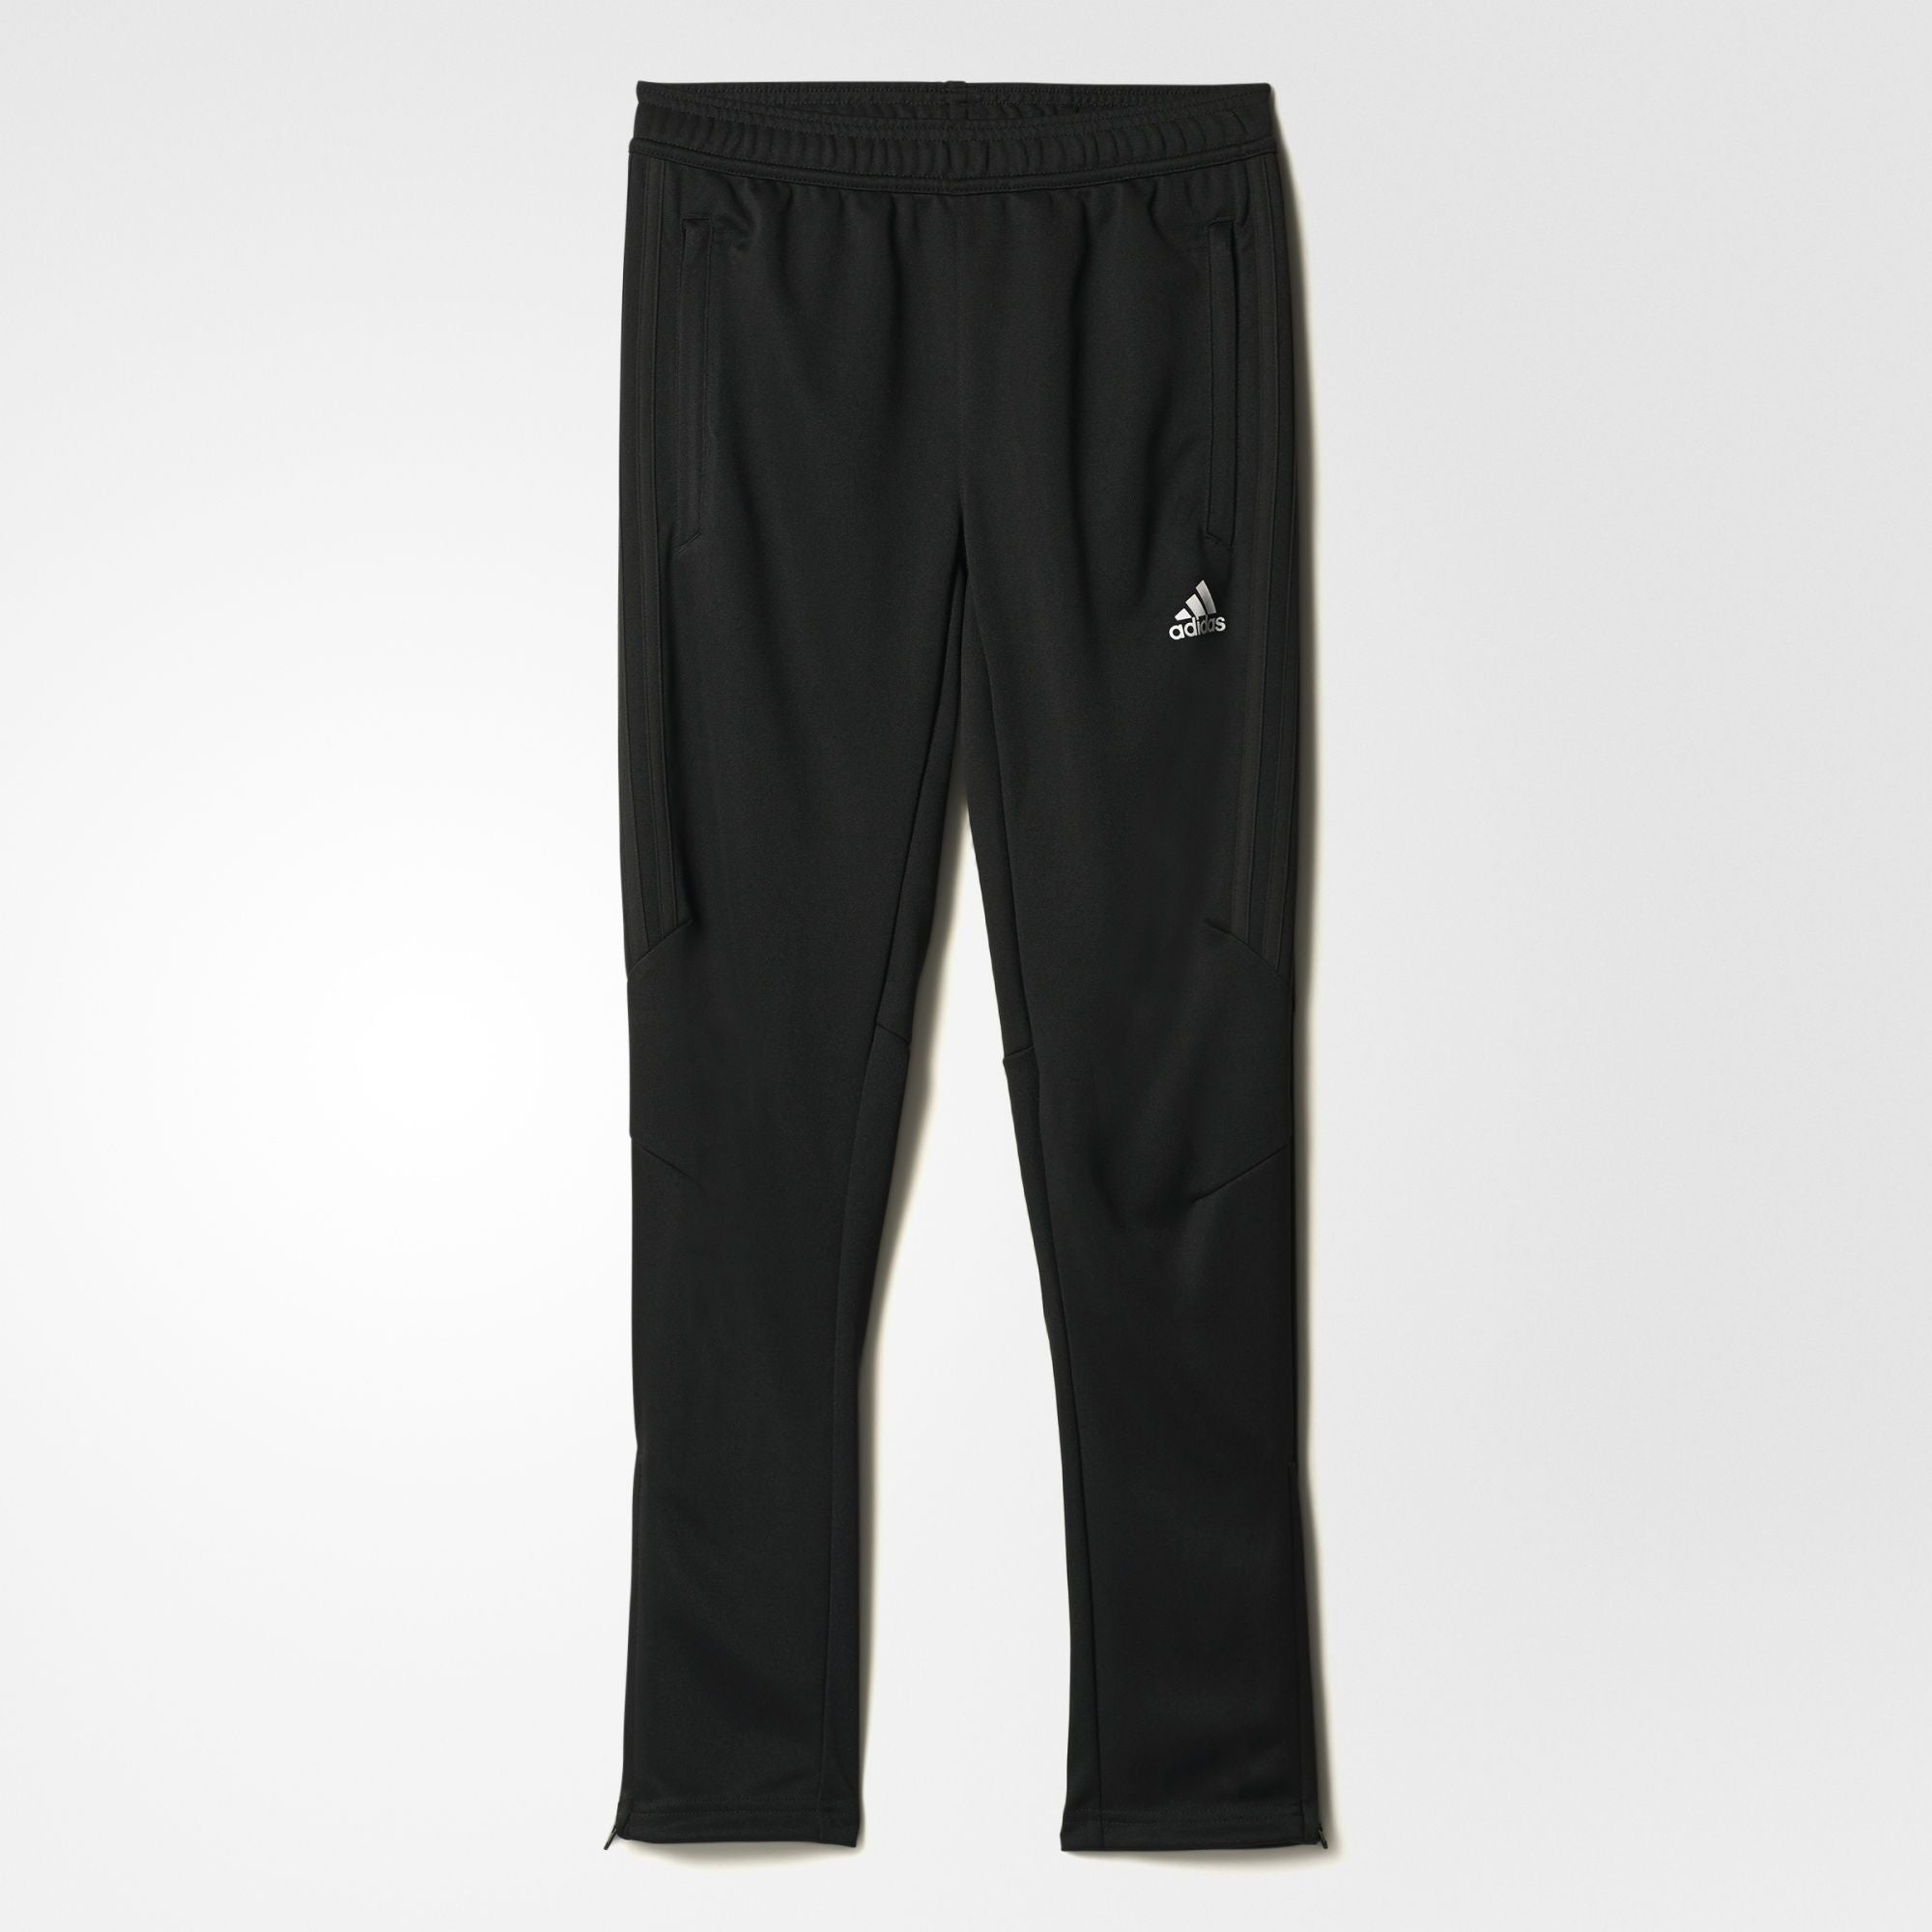 Kid's Tiro 17 Soccer Training Pants